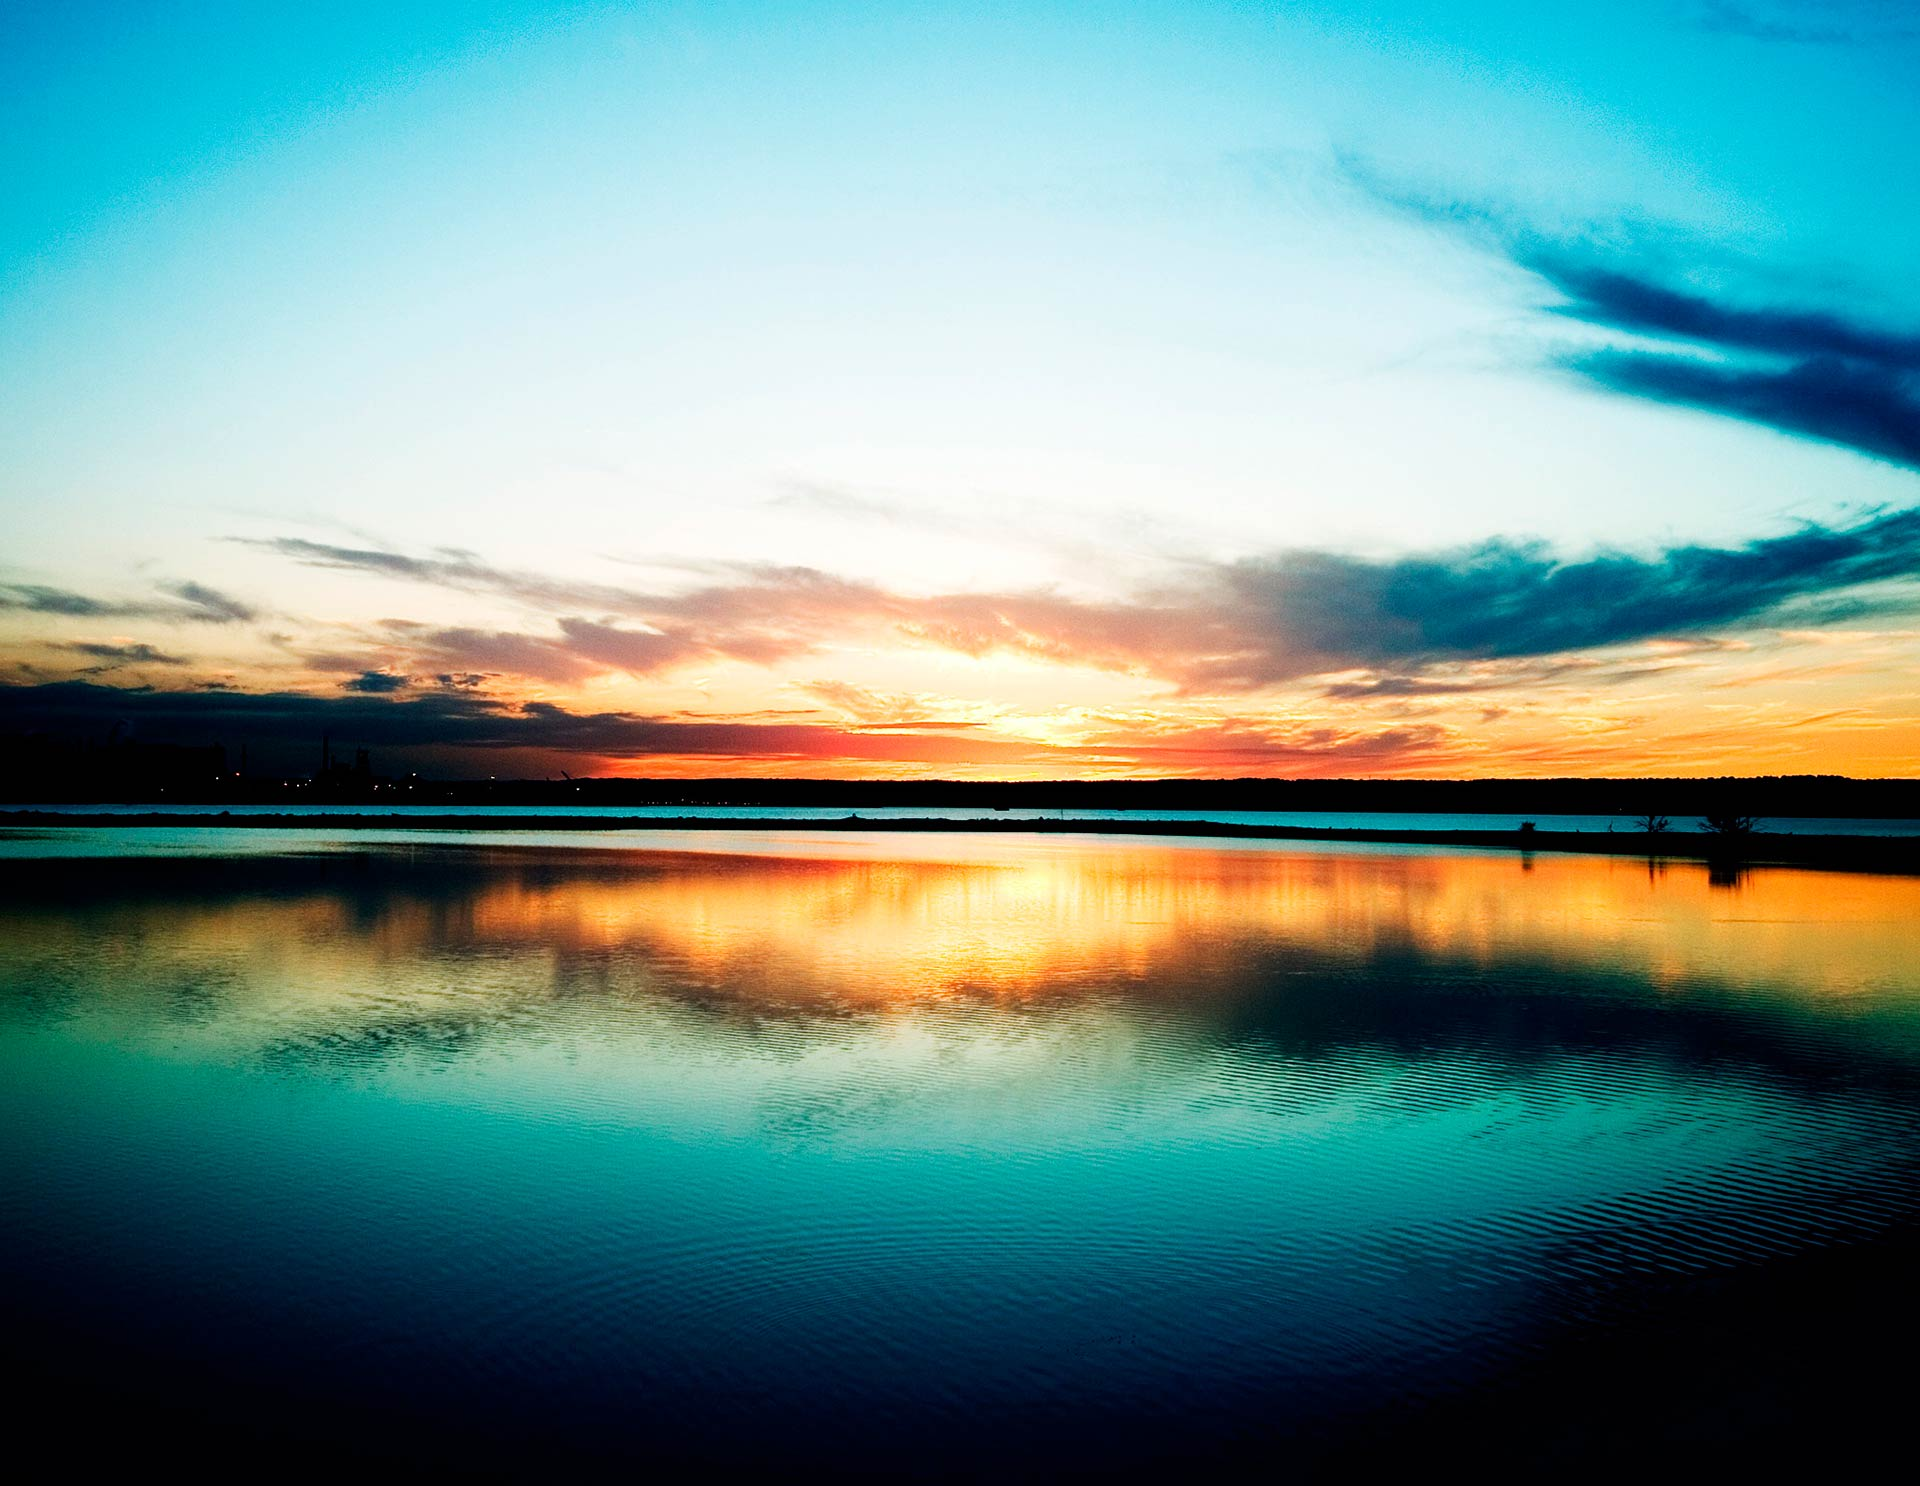 lake-sunset-wallpaperrippling-mirror-lake-at-sunset-wallpaper-dreams-vo4nu7wo